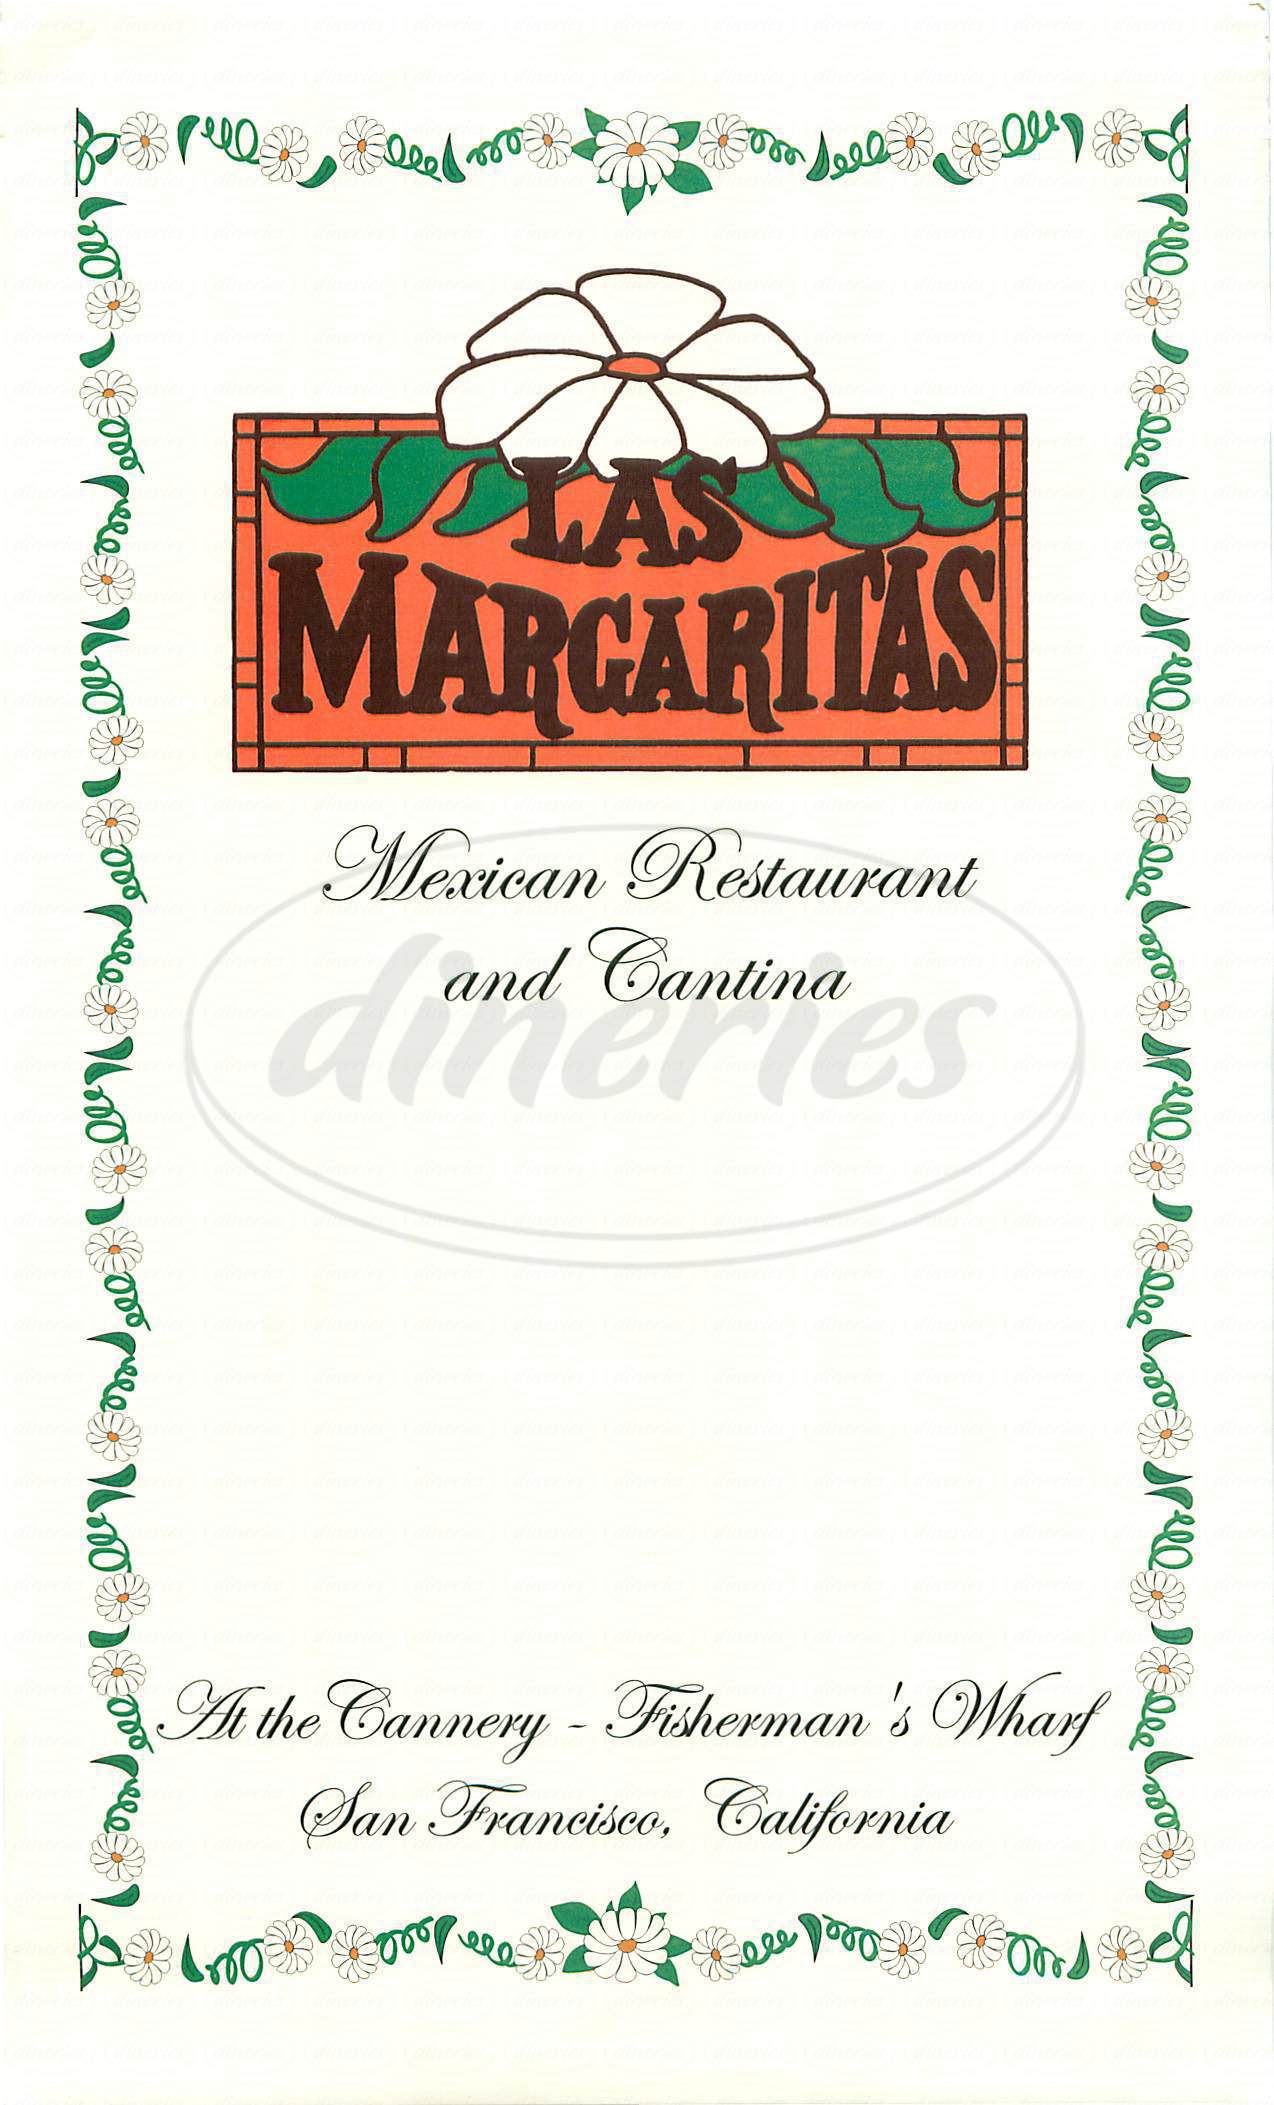 menu for Las Margaritas